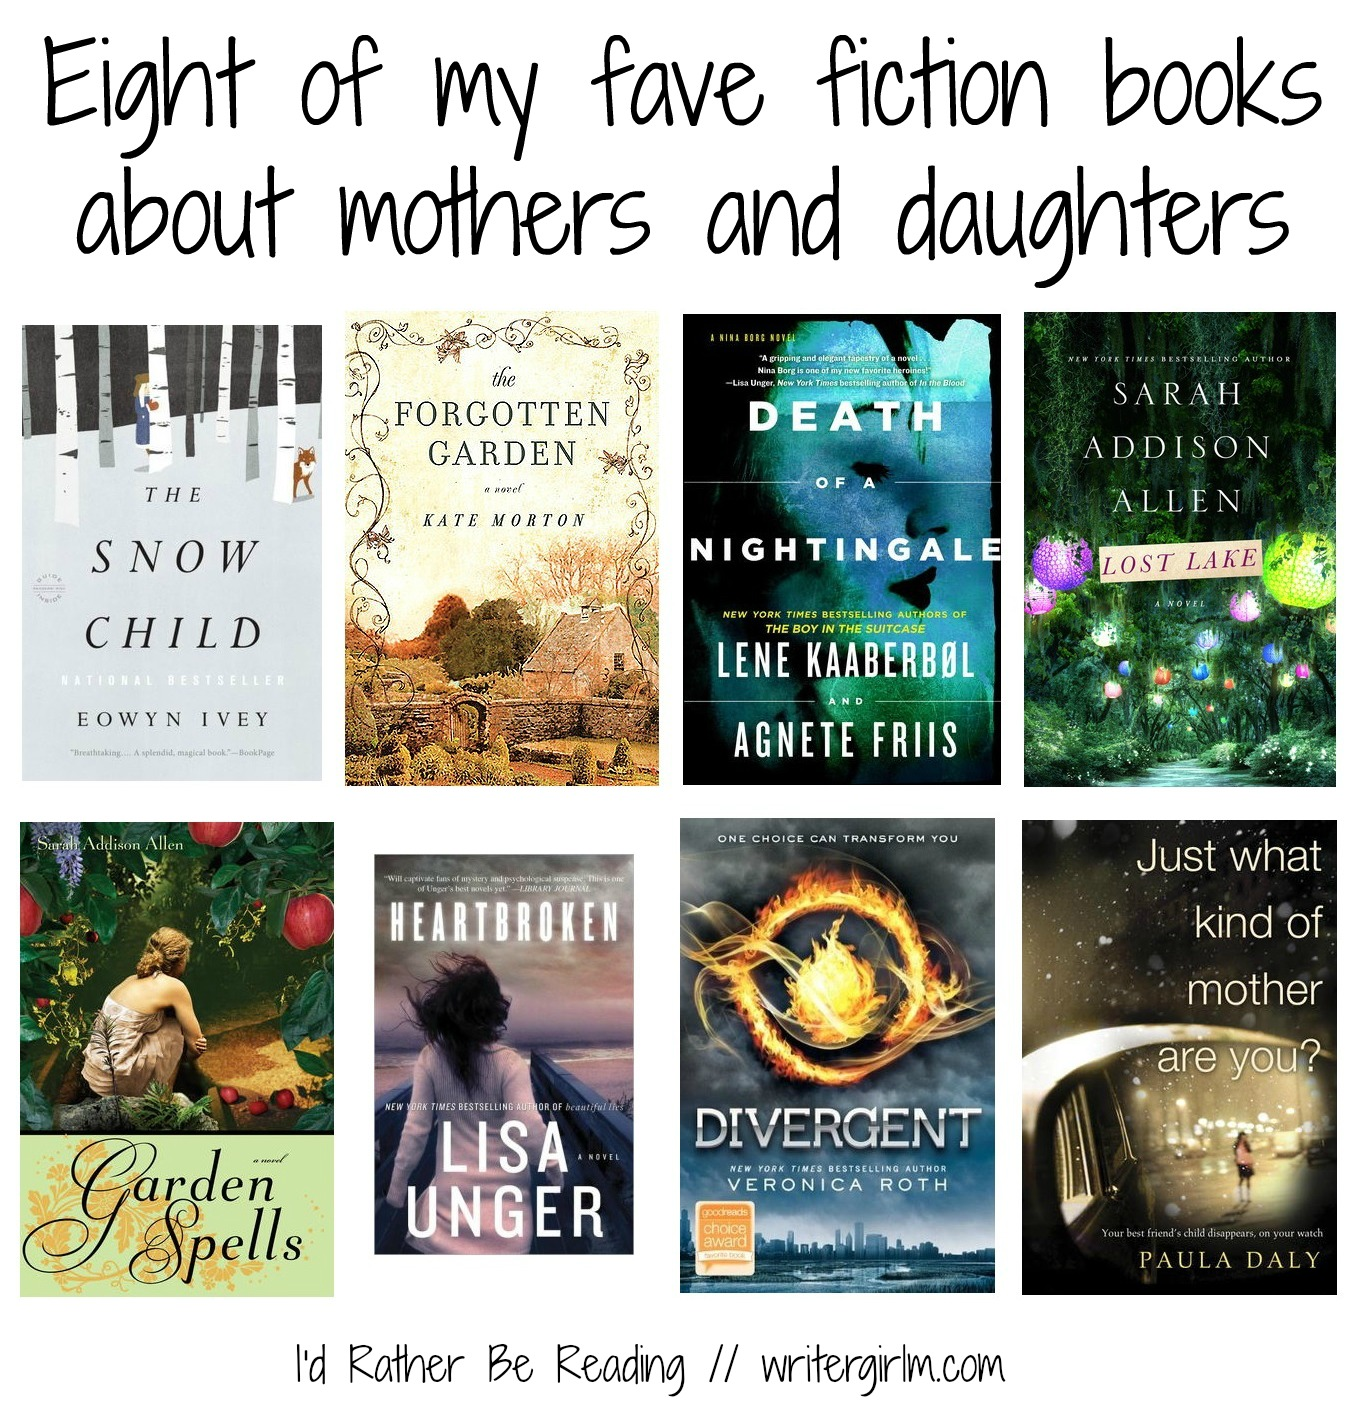 These are eight of my fave fiction books about mothers and daughters--perfect for a Mother's Day gift!